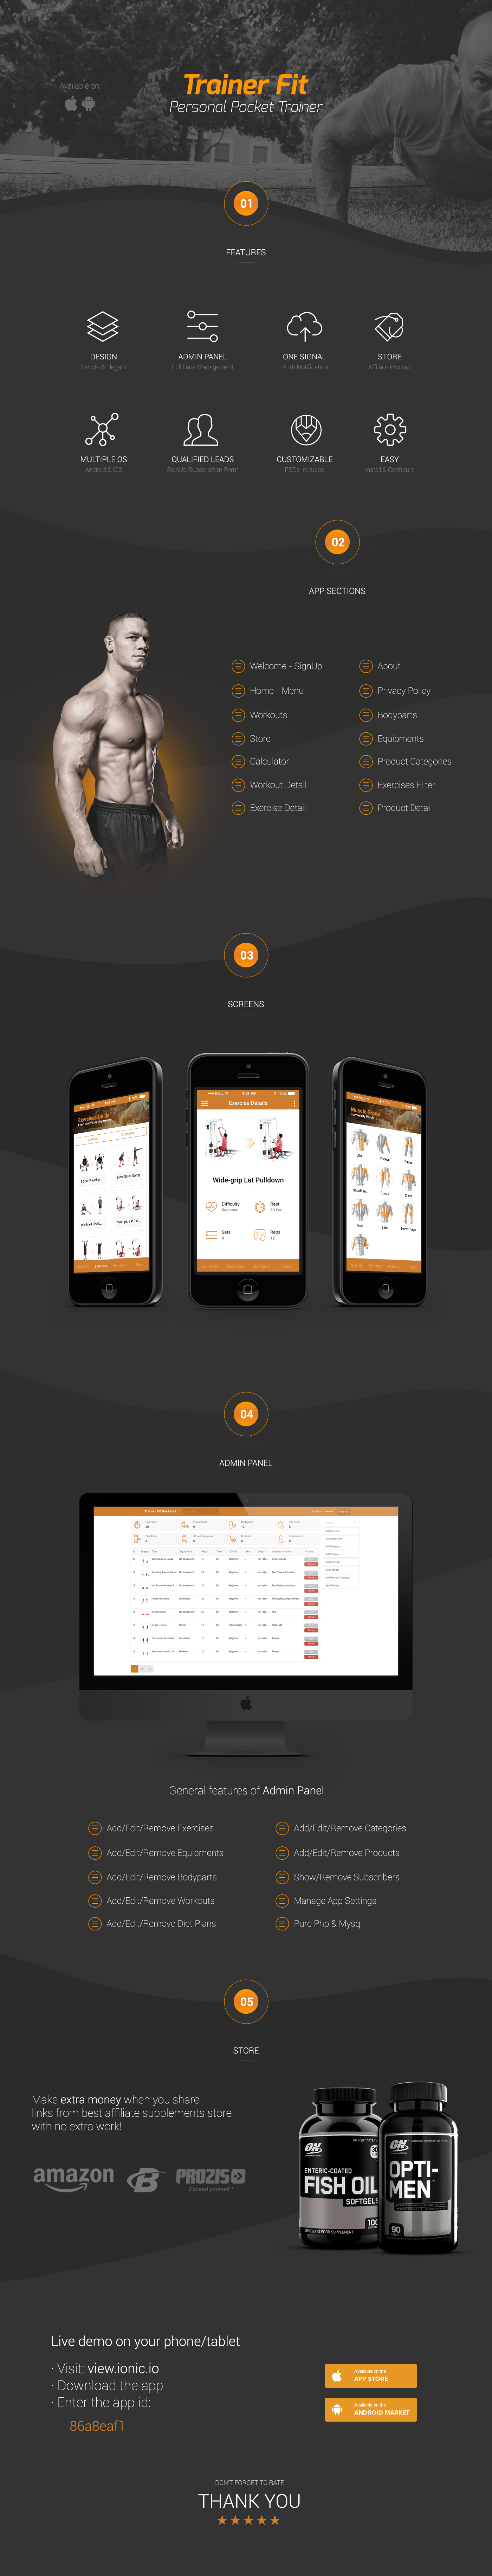 Trainer Fit | Complete Fitness App + Admin Panel | Ionic 1 - 2